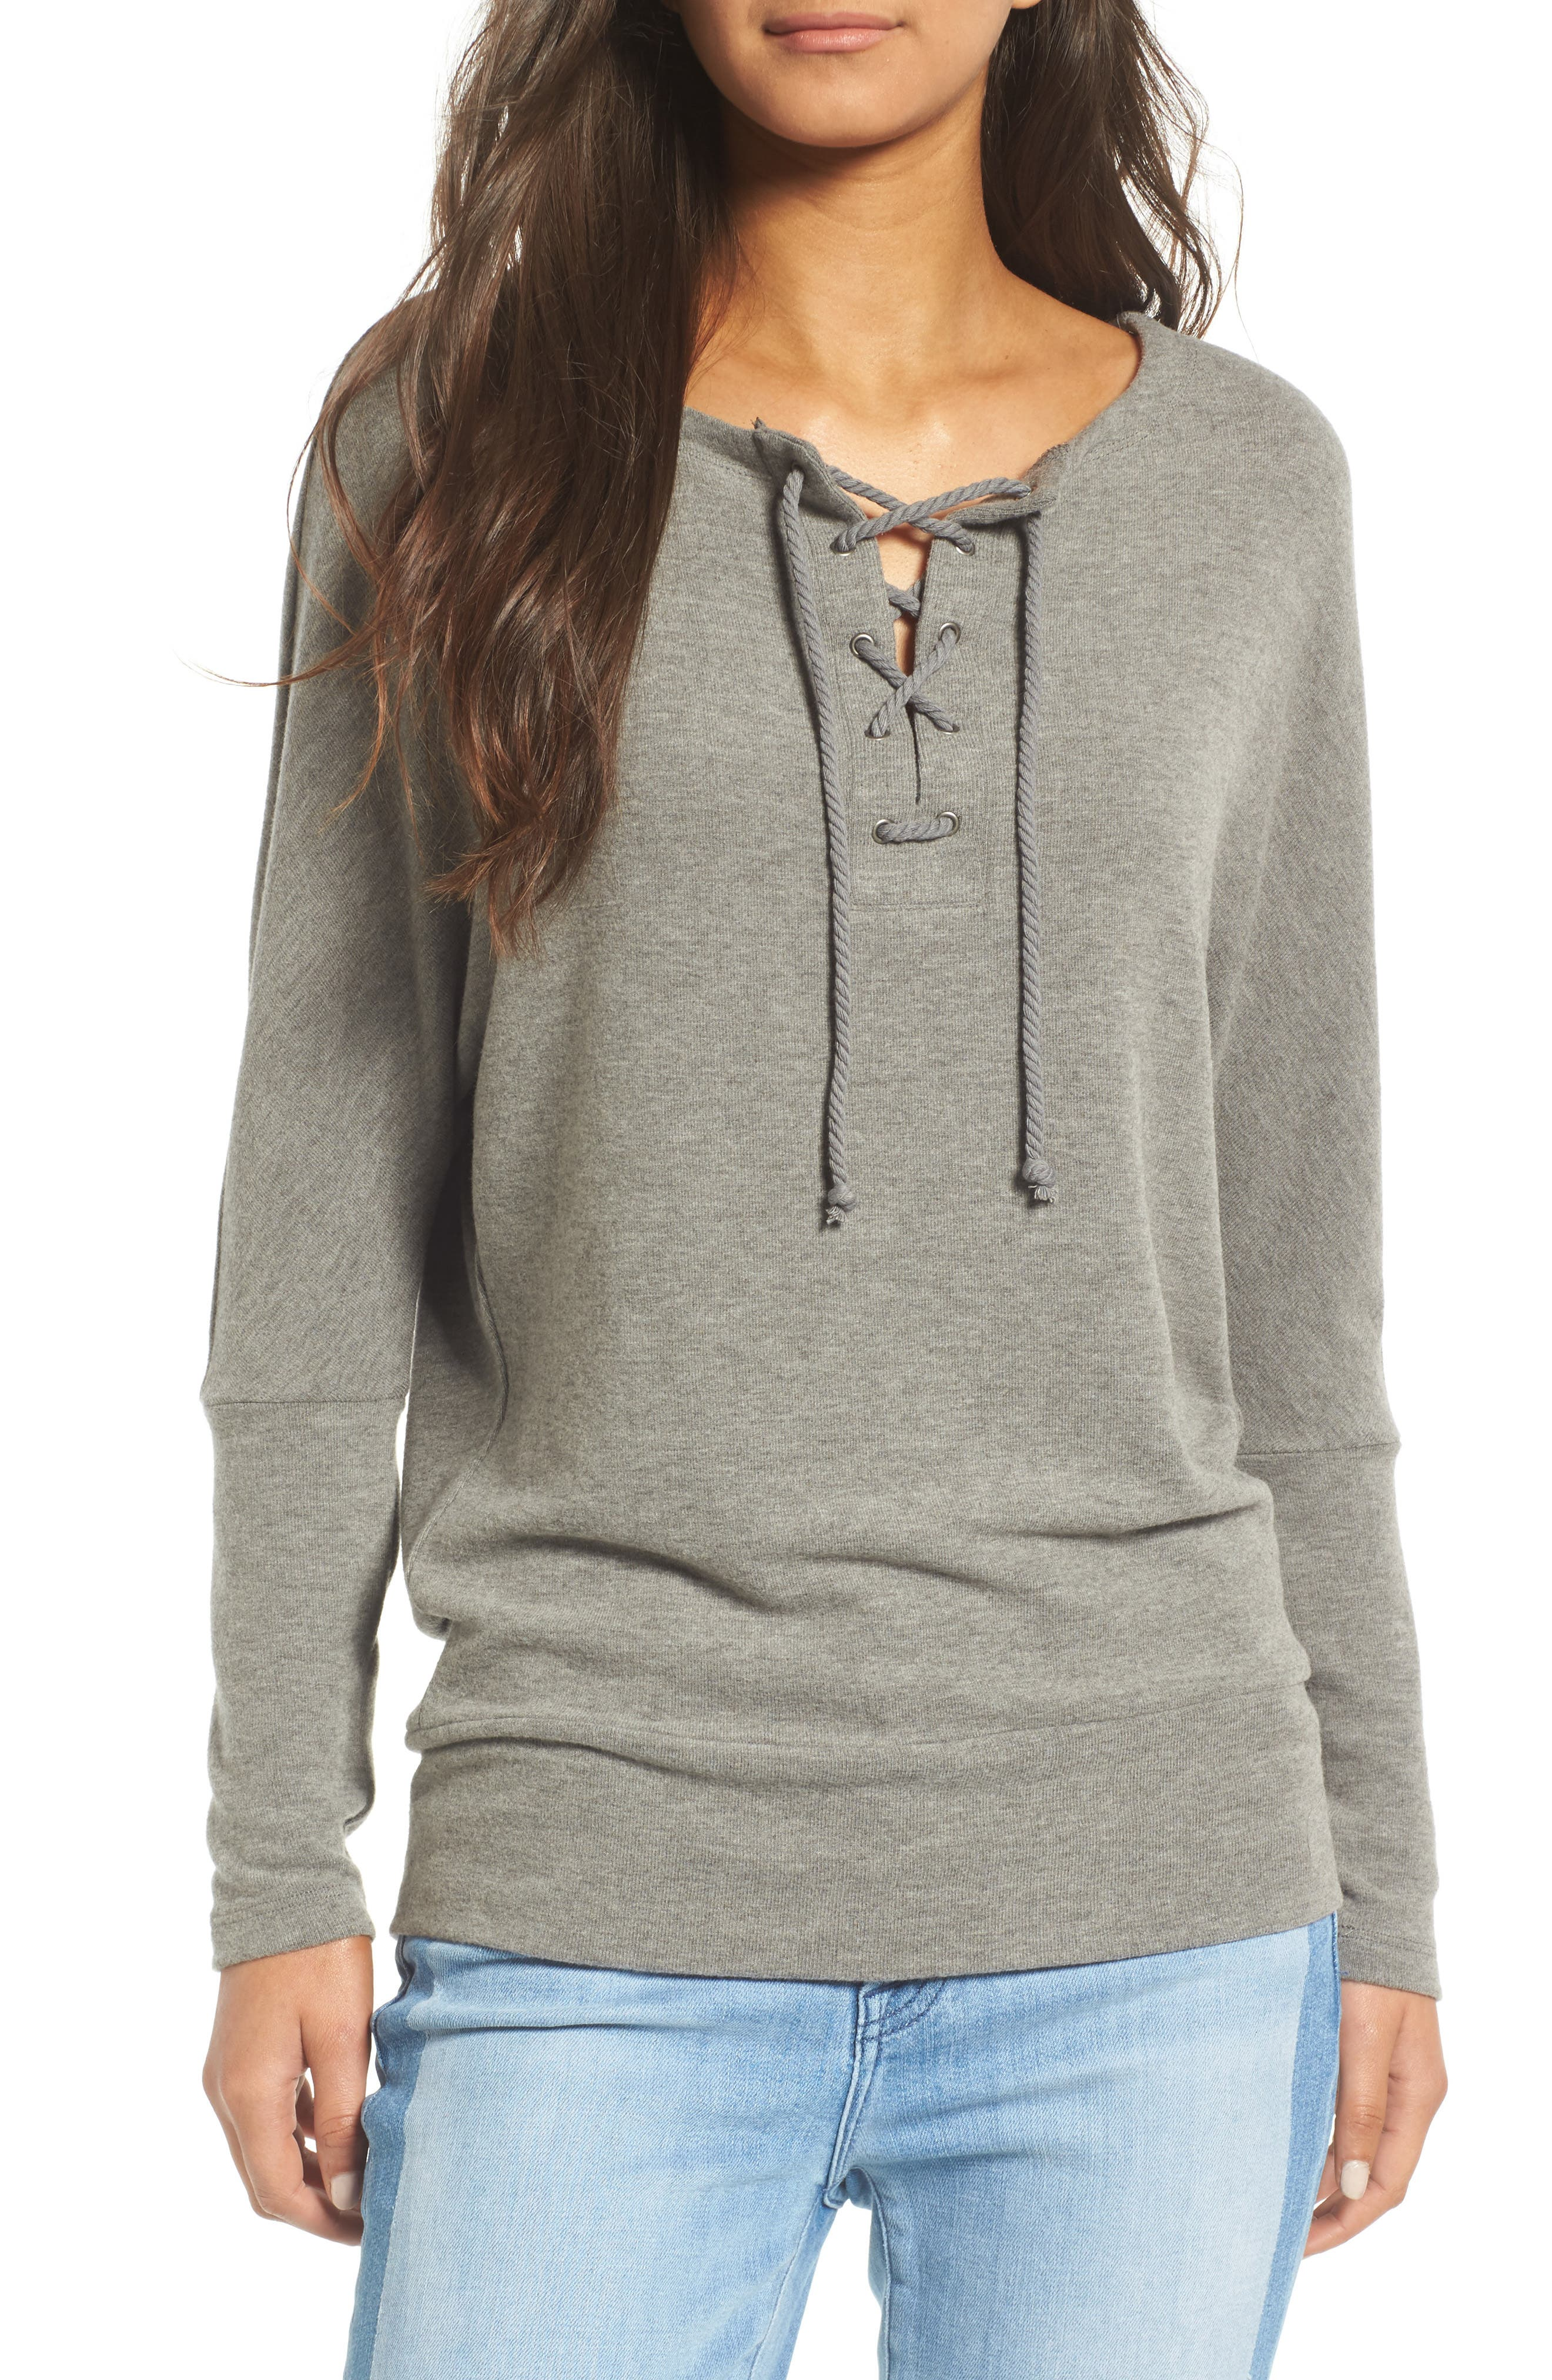 cupcakes and cashmere Danton Lace-Up Sweatshirt